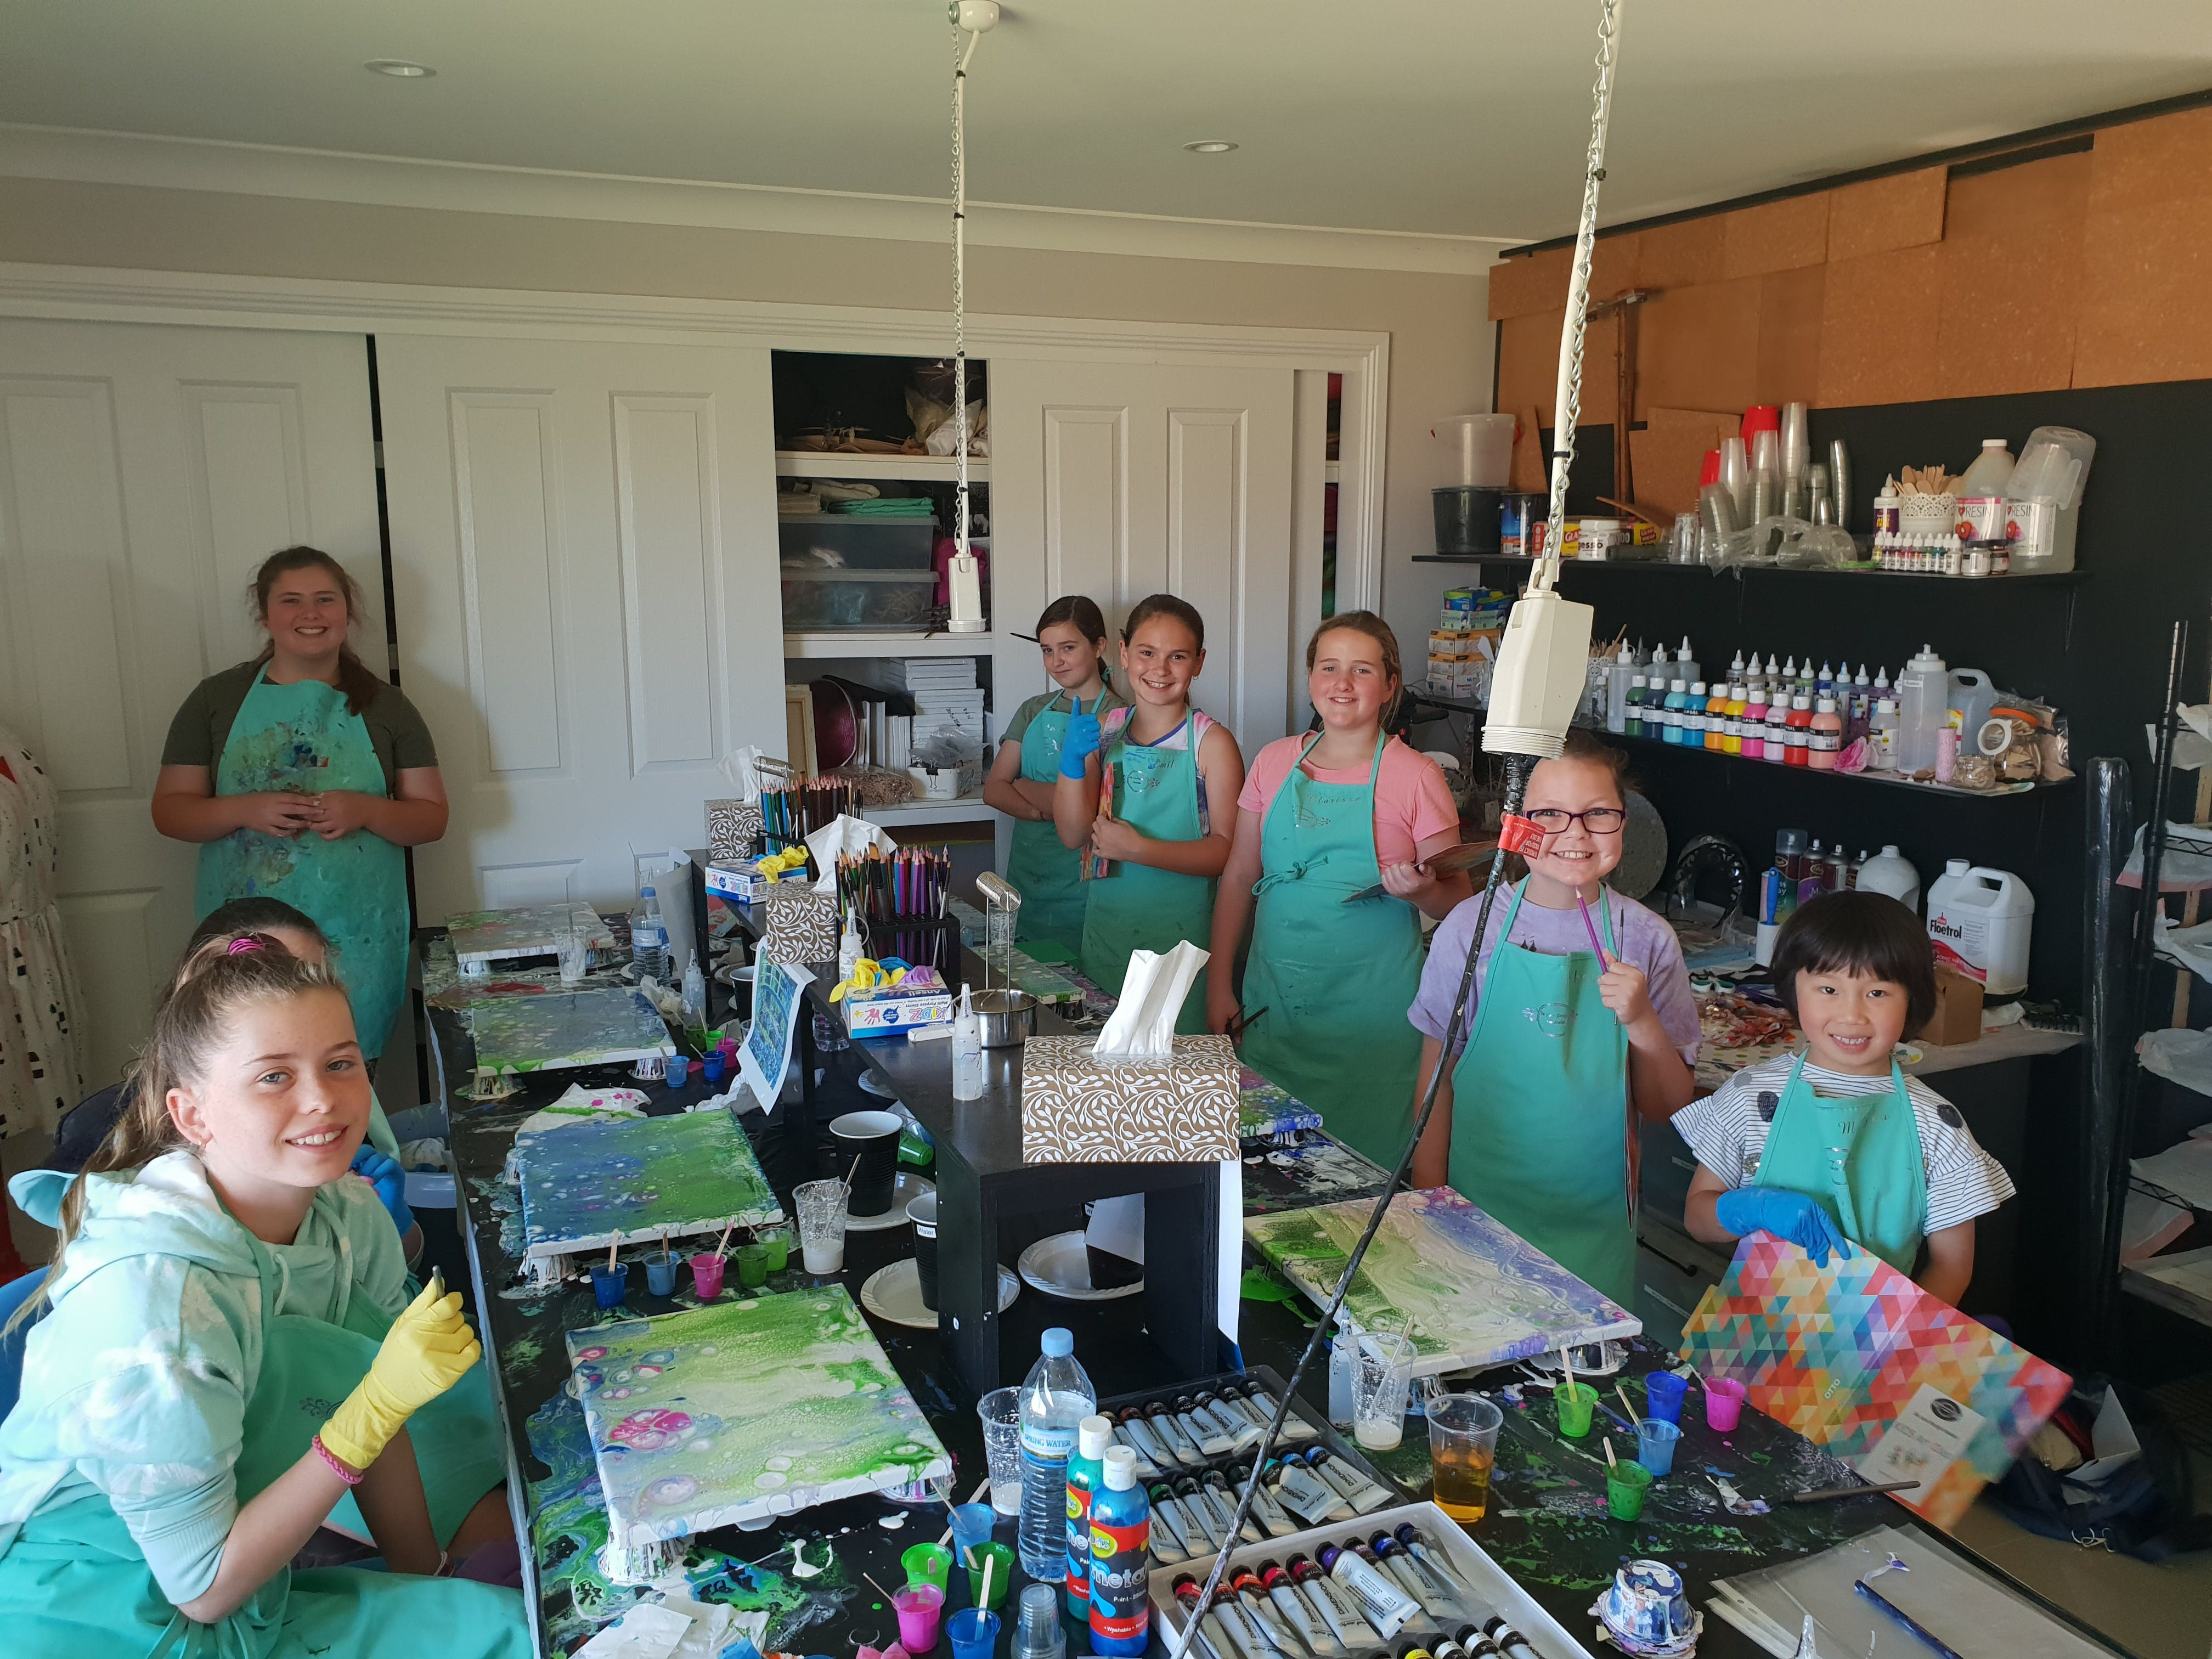 School holidays - Kids art class - Painting - Pubs and Clubs